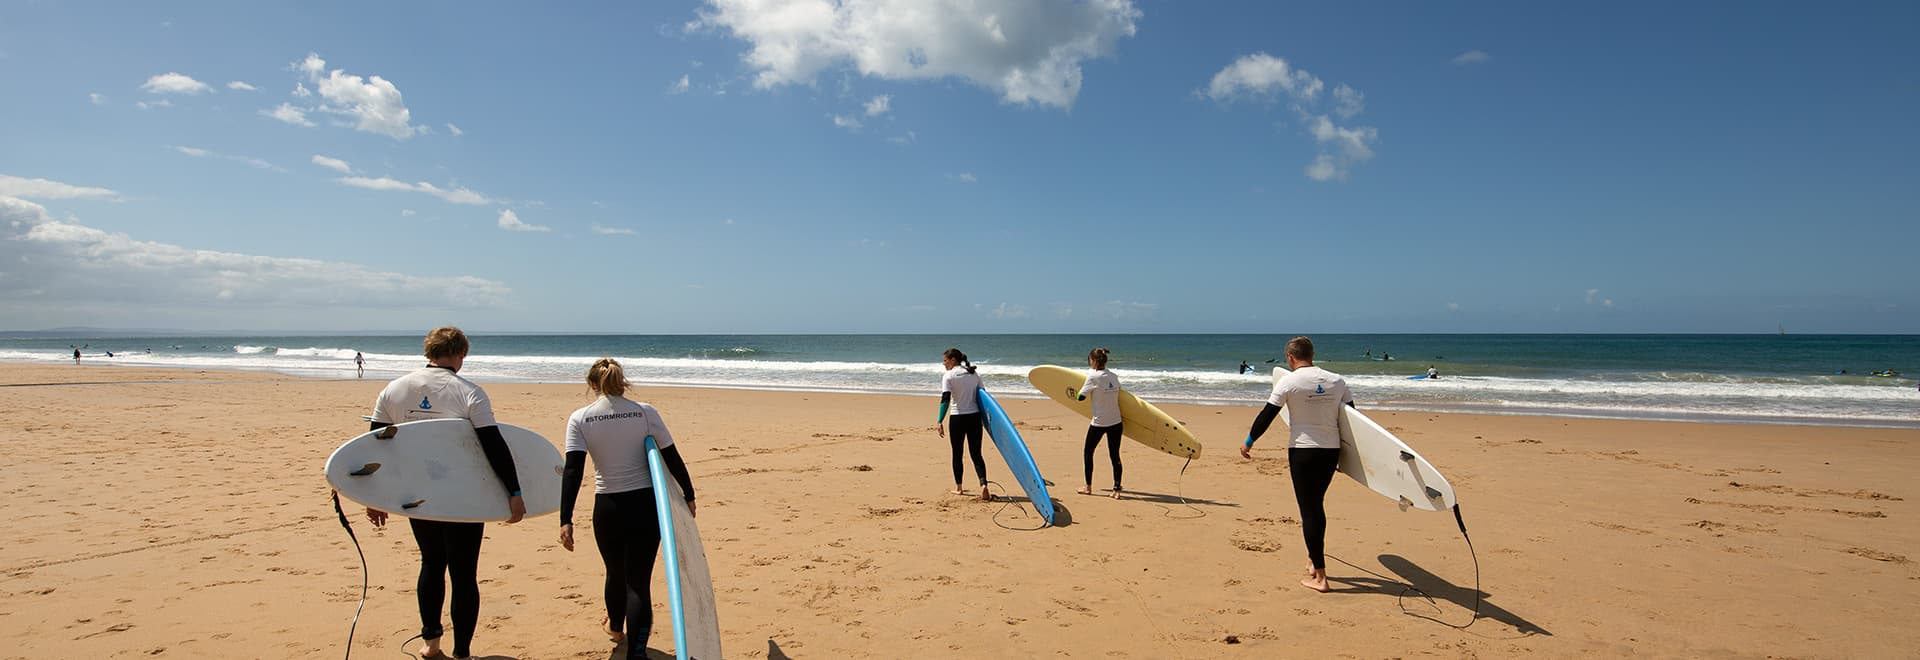 intermediate group of surfers at the beach